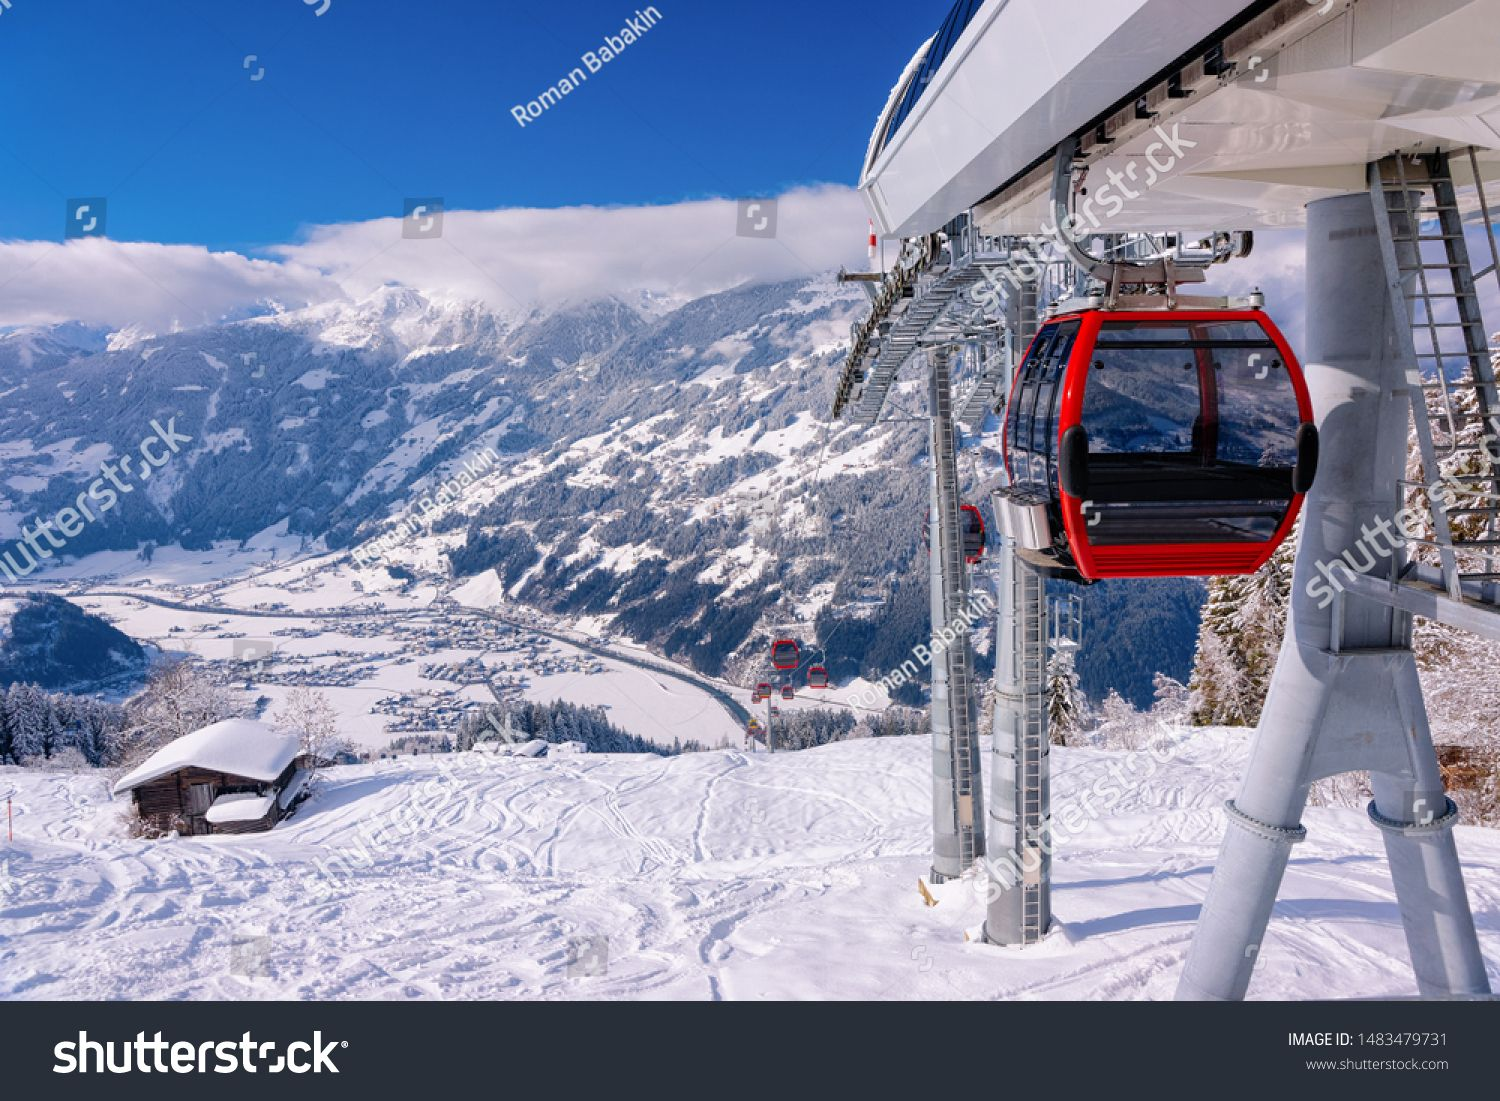 Red Cable Cars Of Zillertal Arena Ski Resort In Tyrol In Mayrhofen In Austria At Winter Alps Chair Lifts In Skiing Ski Resort Baby Shower Invitation Templates